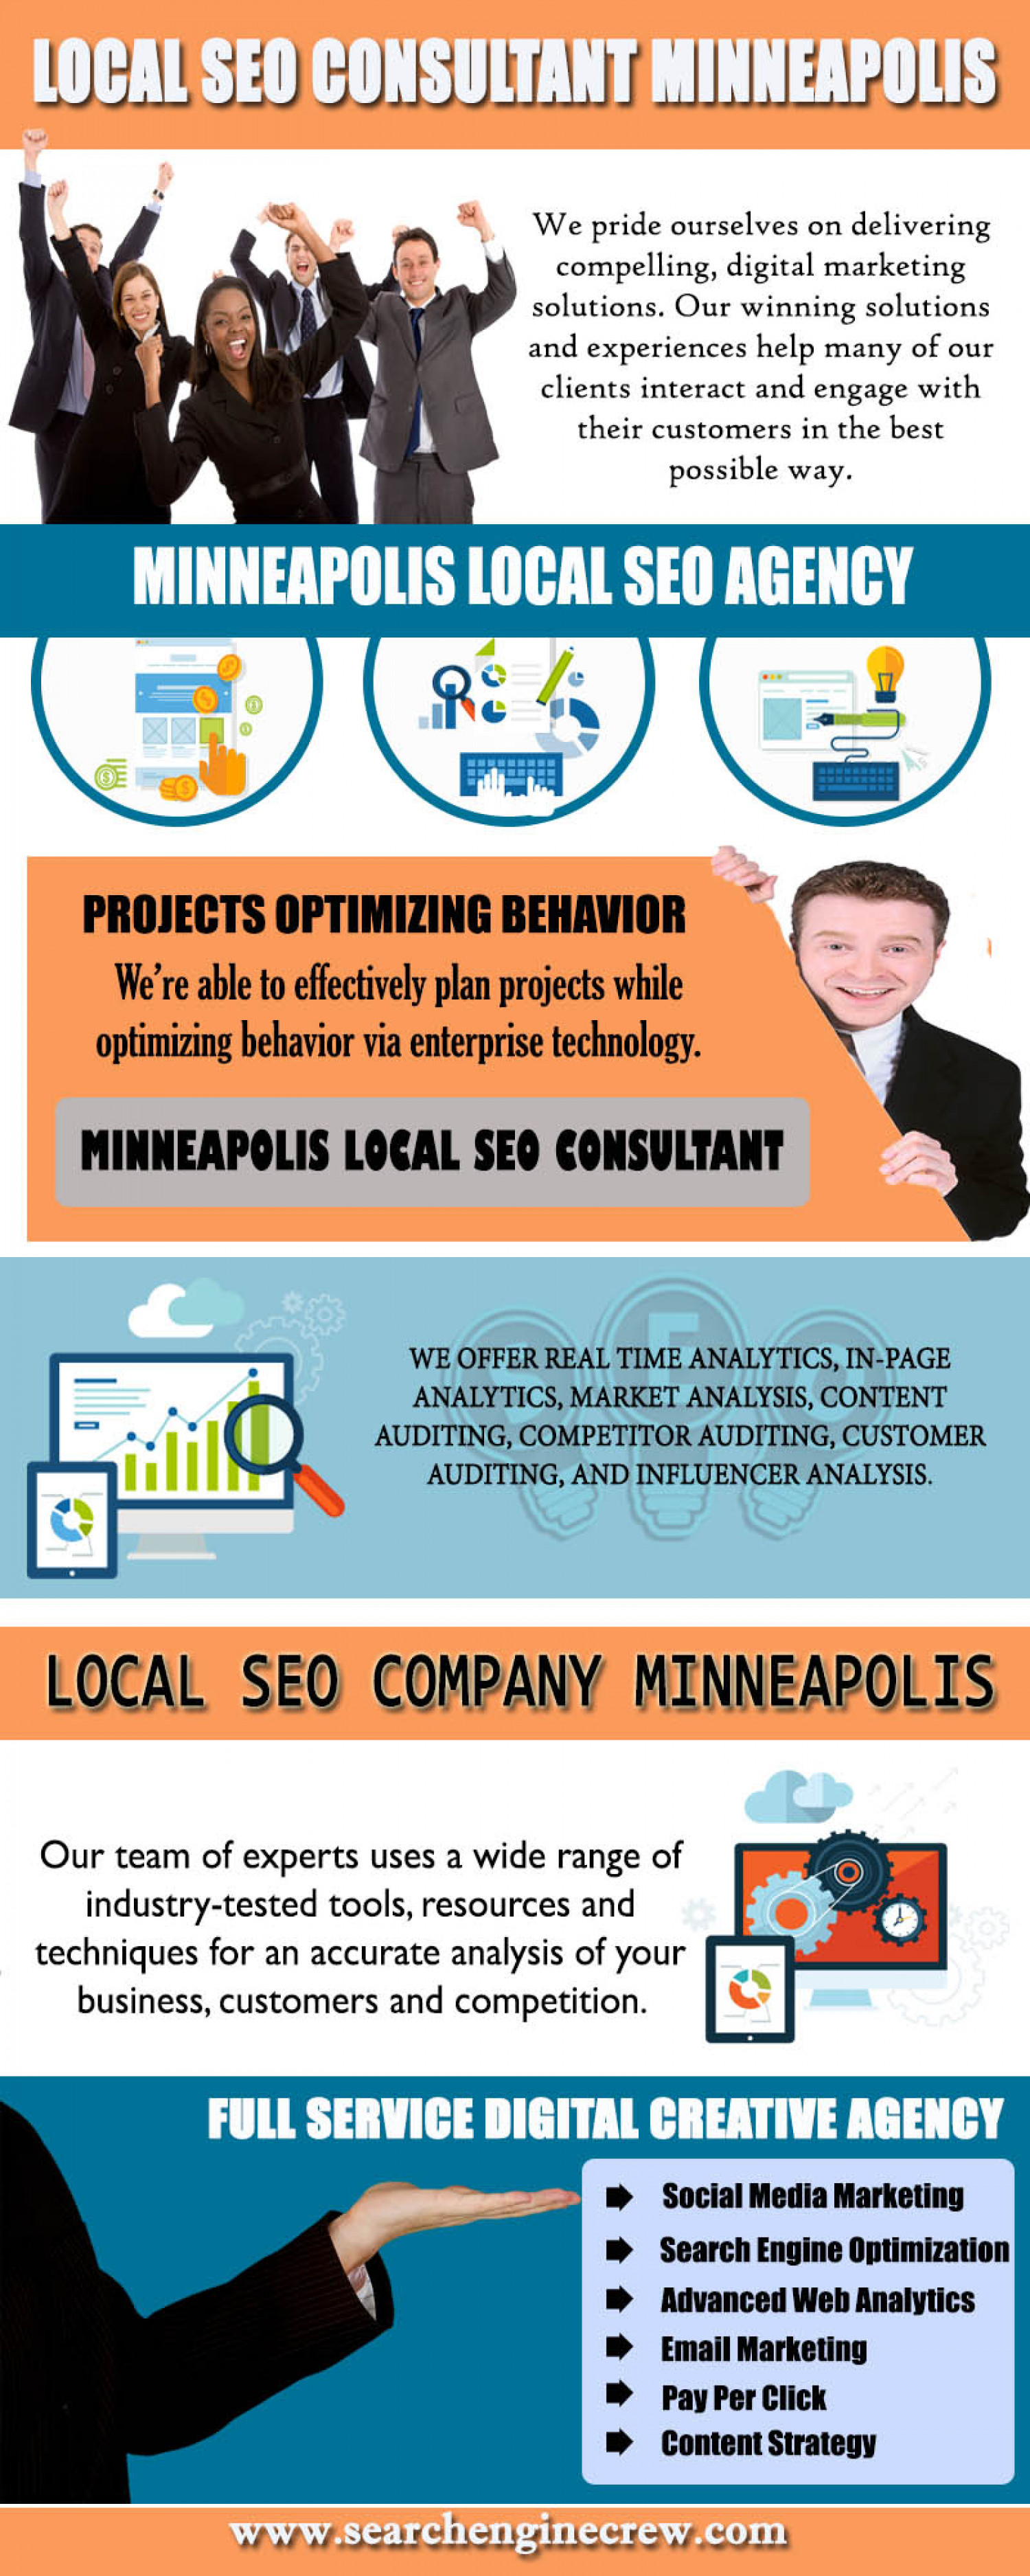 Top Online Advertising Agencies In Minneapolis